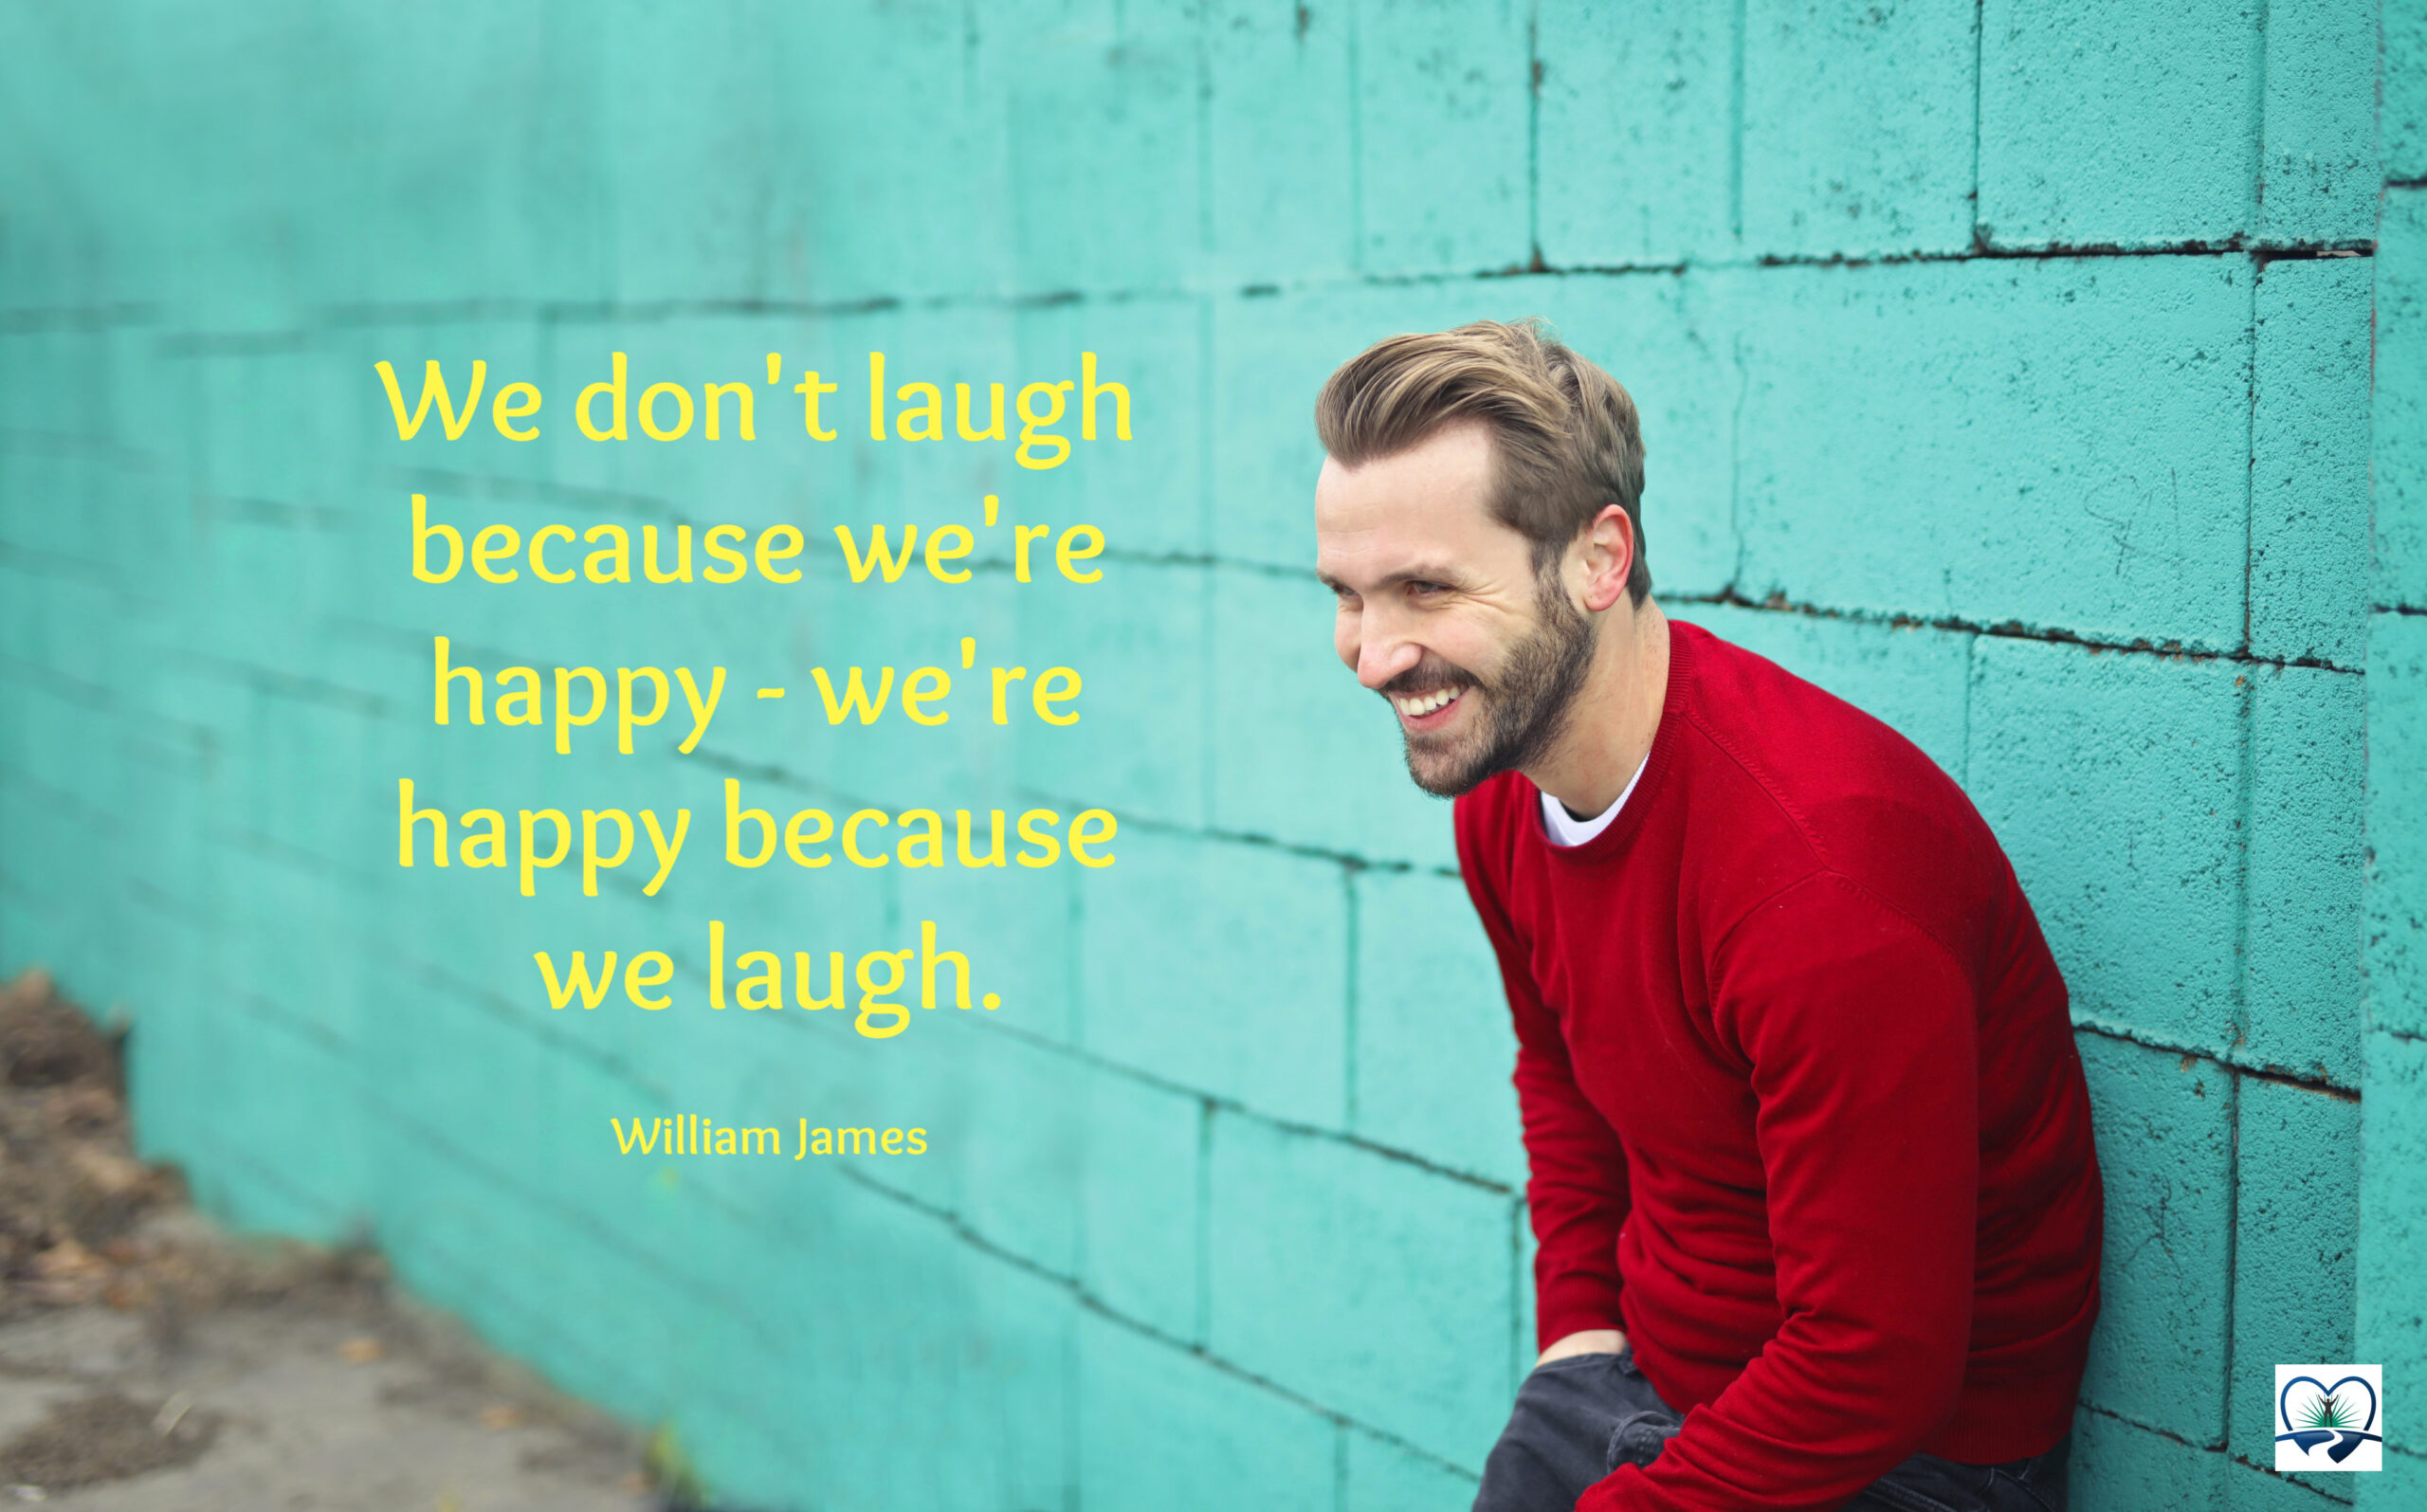 Man taking William James' advice and finding happiness through laughter.